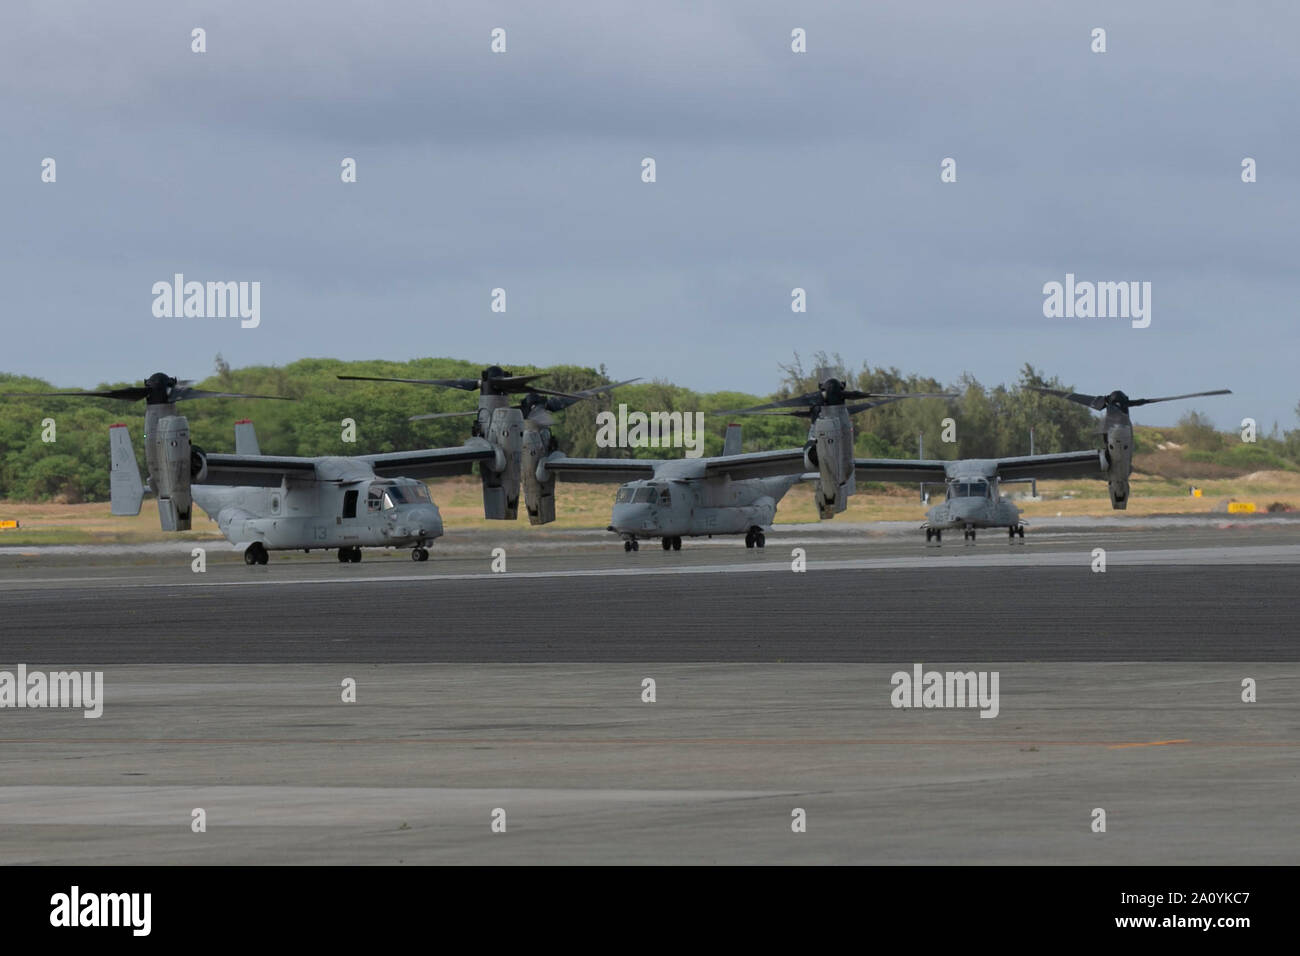 U.S. Marines with Marine Medium Tiltrotor Squadron 363, 1st Marine Aircraft Wing, complete a Trans-Pacific flight from Darwin, Australia following a six-month deployment, landing MV-22 Ospreys on Marine Corps Base Hawaii, September 19, 2019. VMM-363 conducted the flight to improve and refine MV-22 Osprey operations that have been developed over the past three Marine Rotational Force-Darwin iterations. (U.S. Marine Corps photo by Lance Cpl. Jacob Wilson) Stock Photo